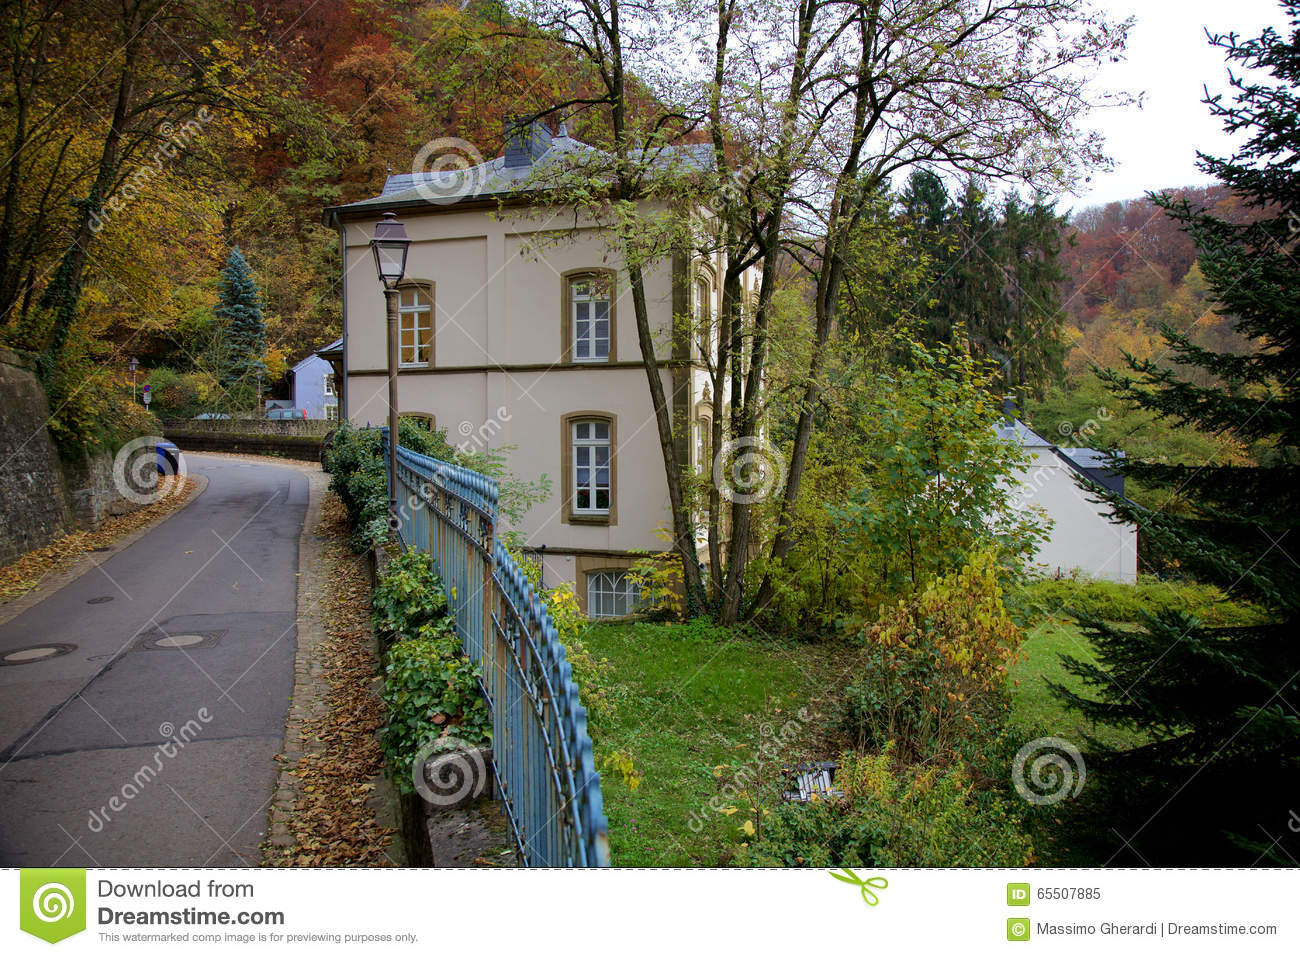 Robert schuman house in luxembourg editorial image image for Luxembourg house